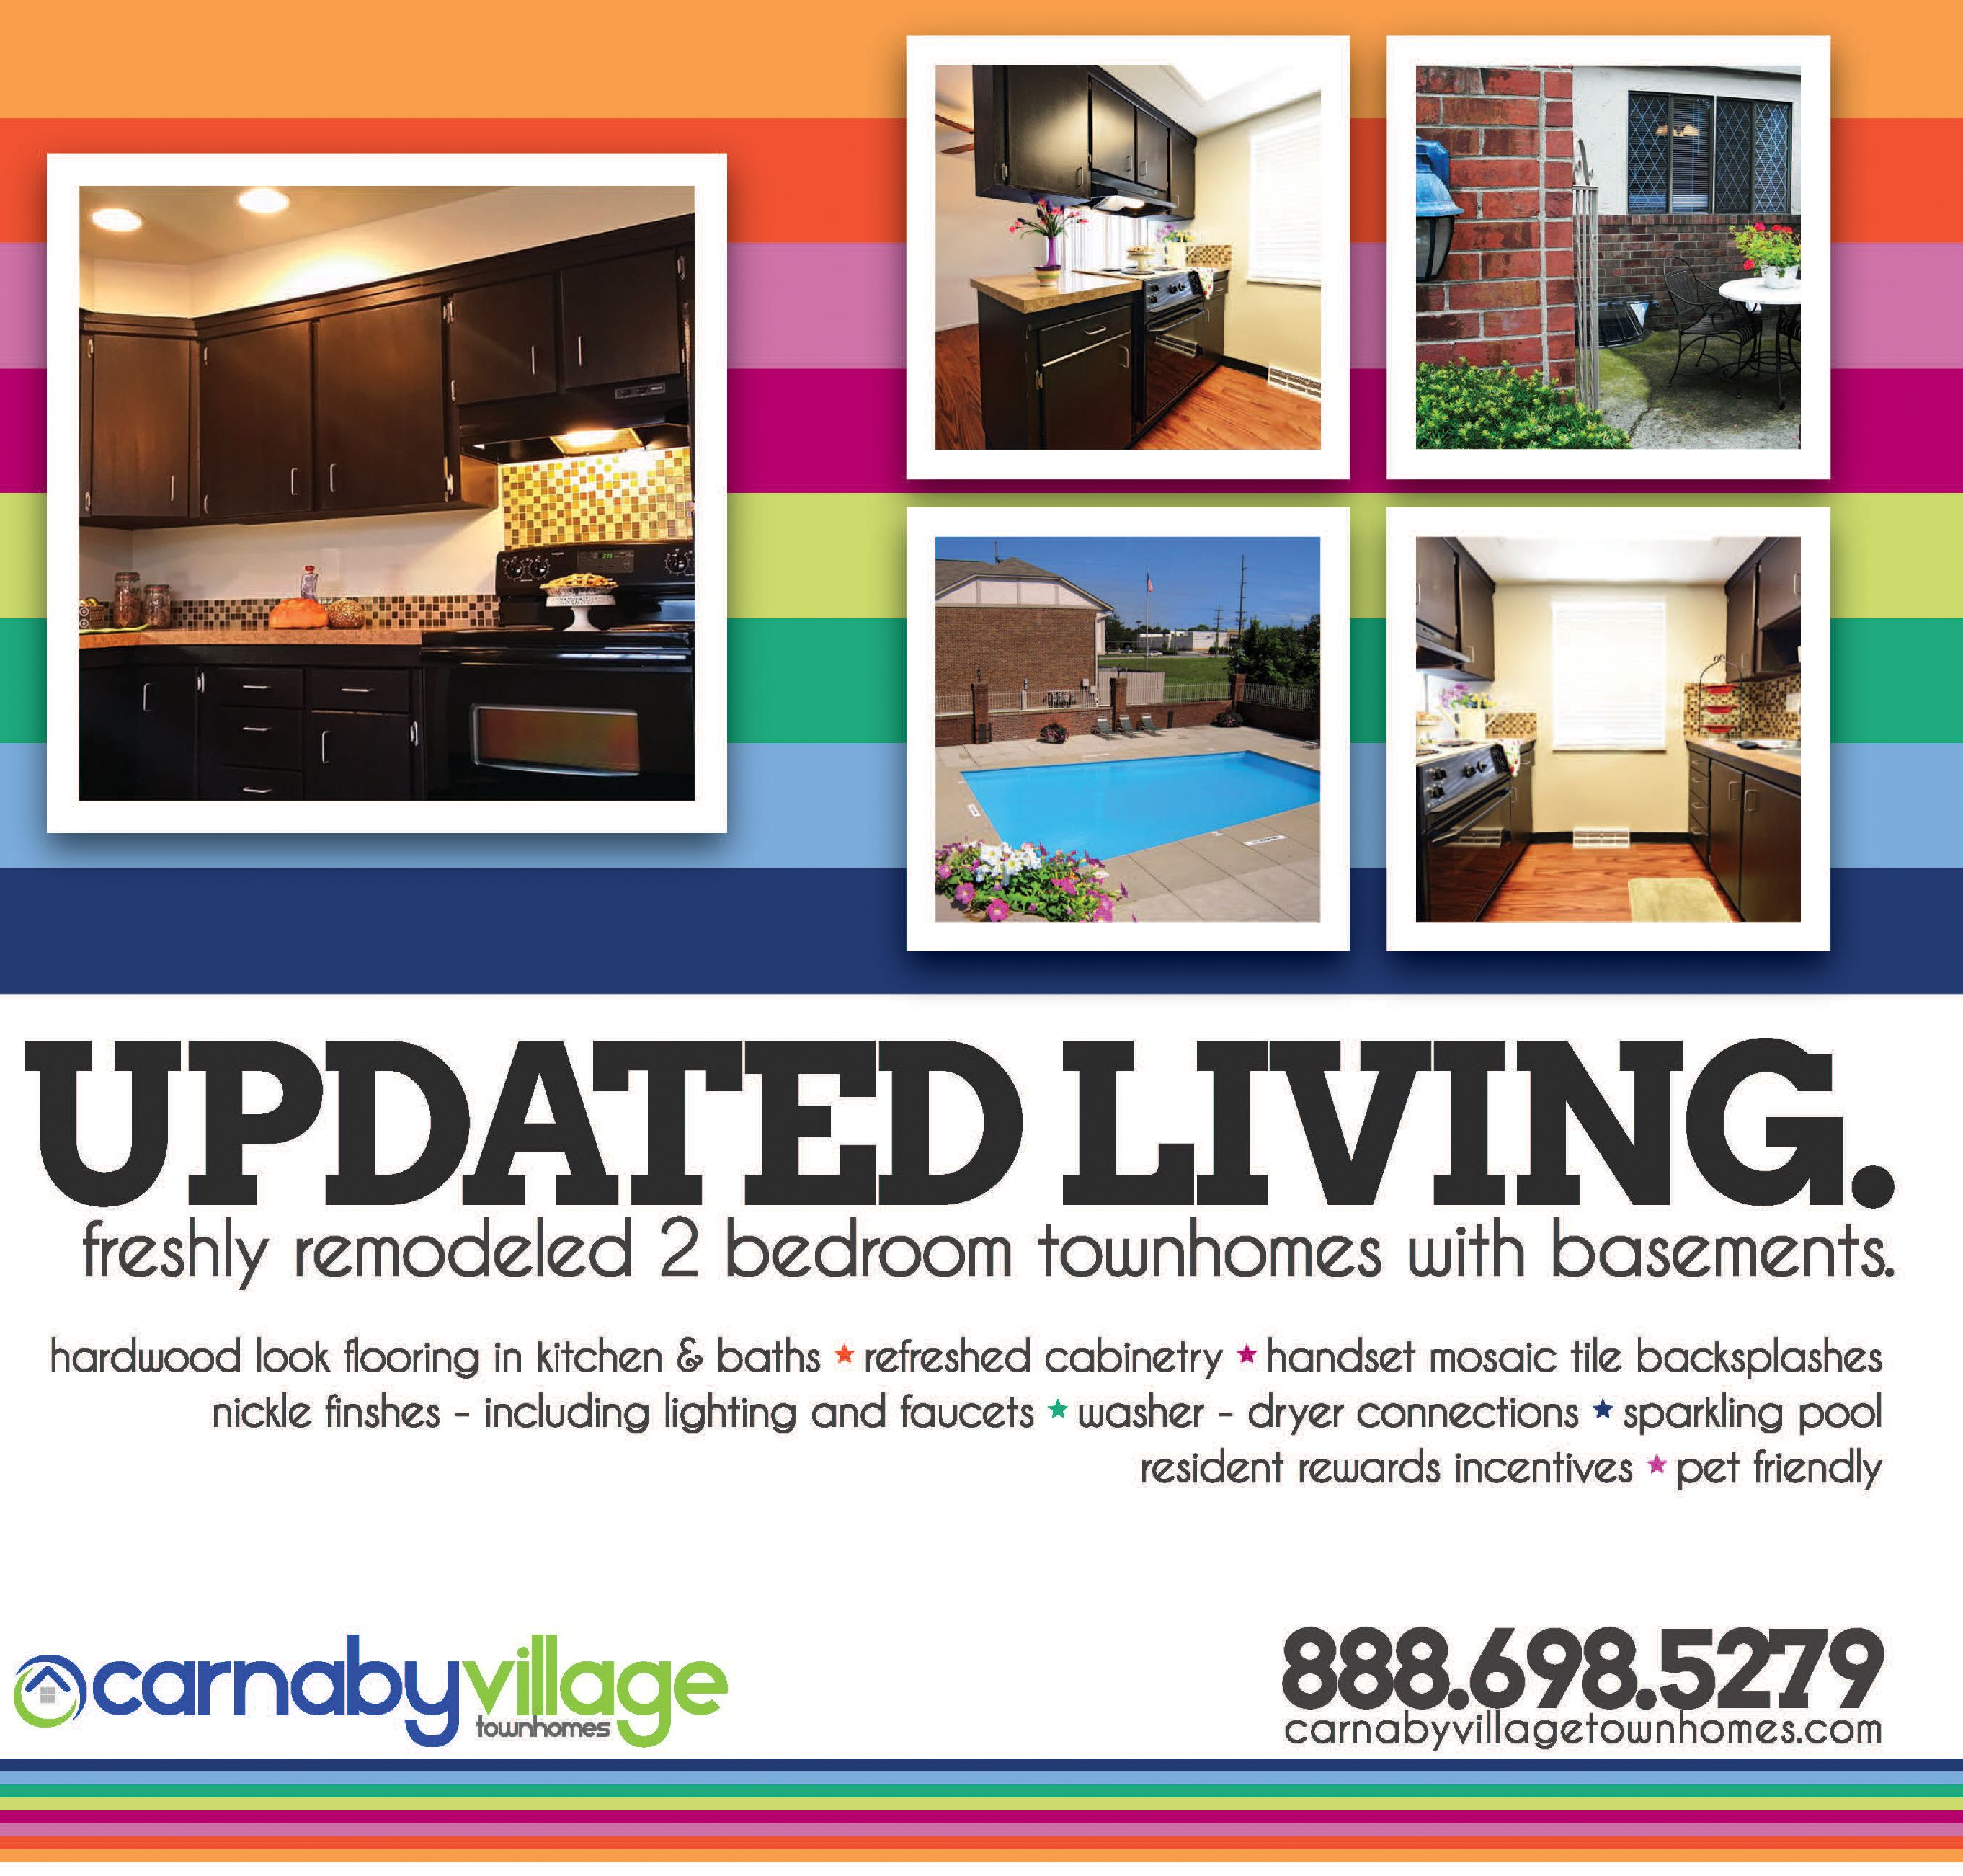 Carnaby village townhomes columbus ohio mosaic tile